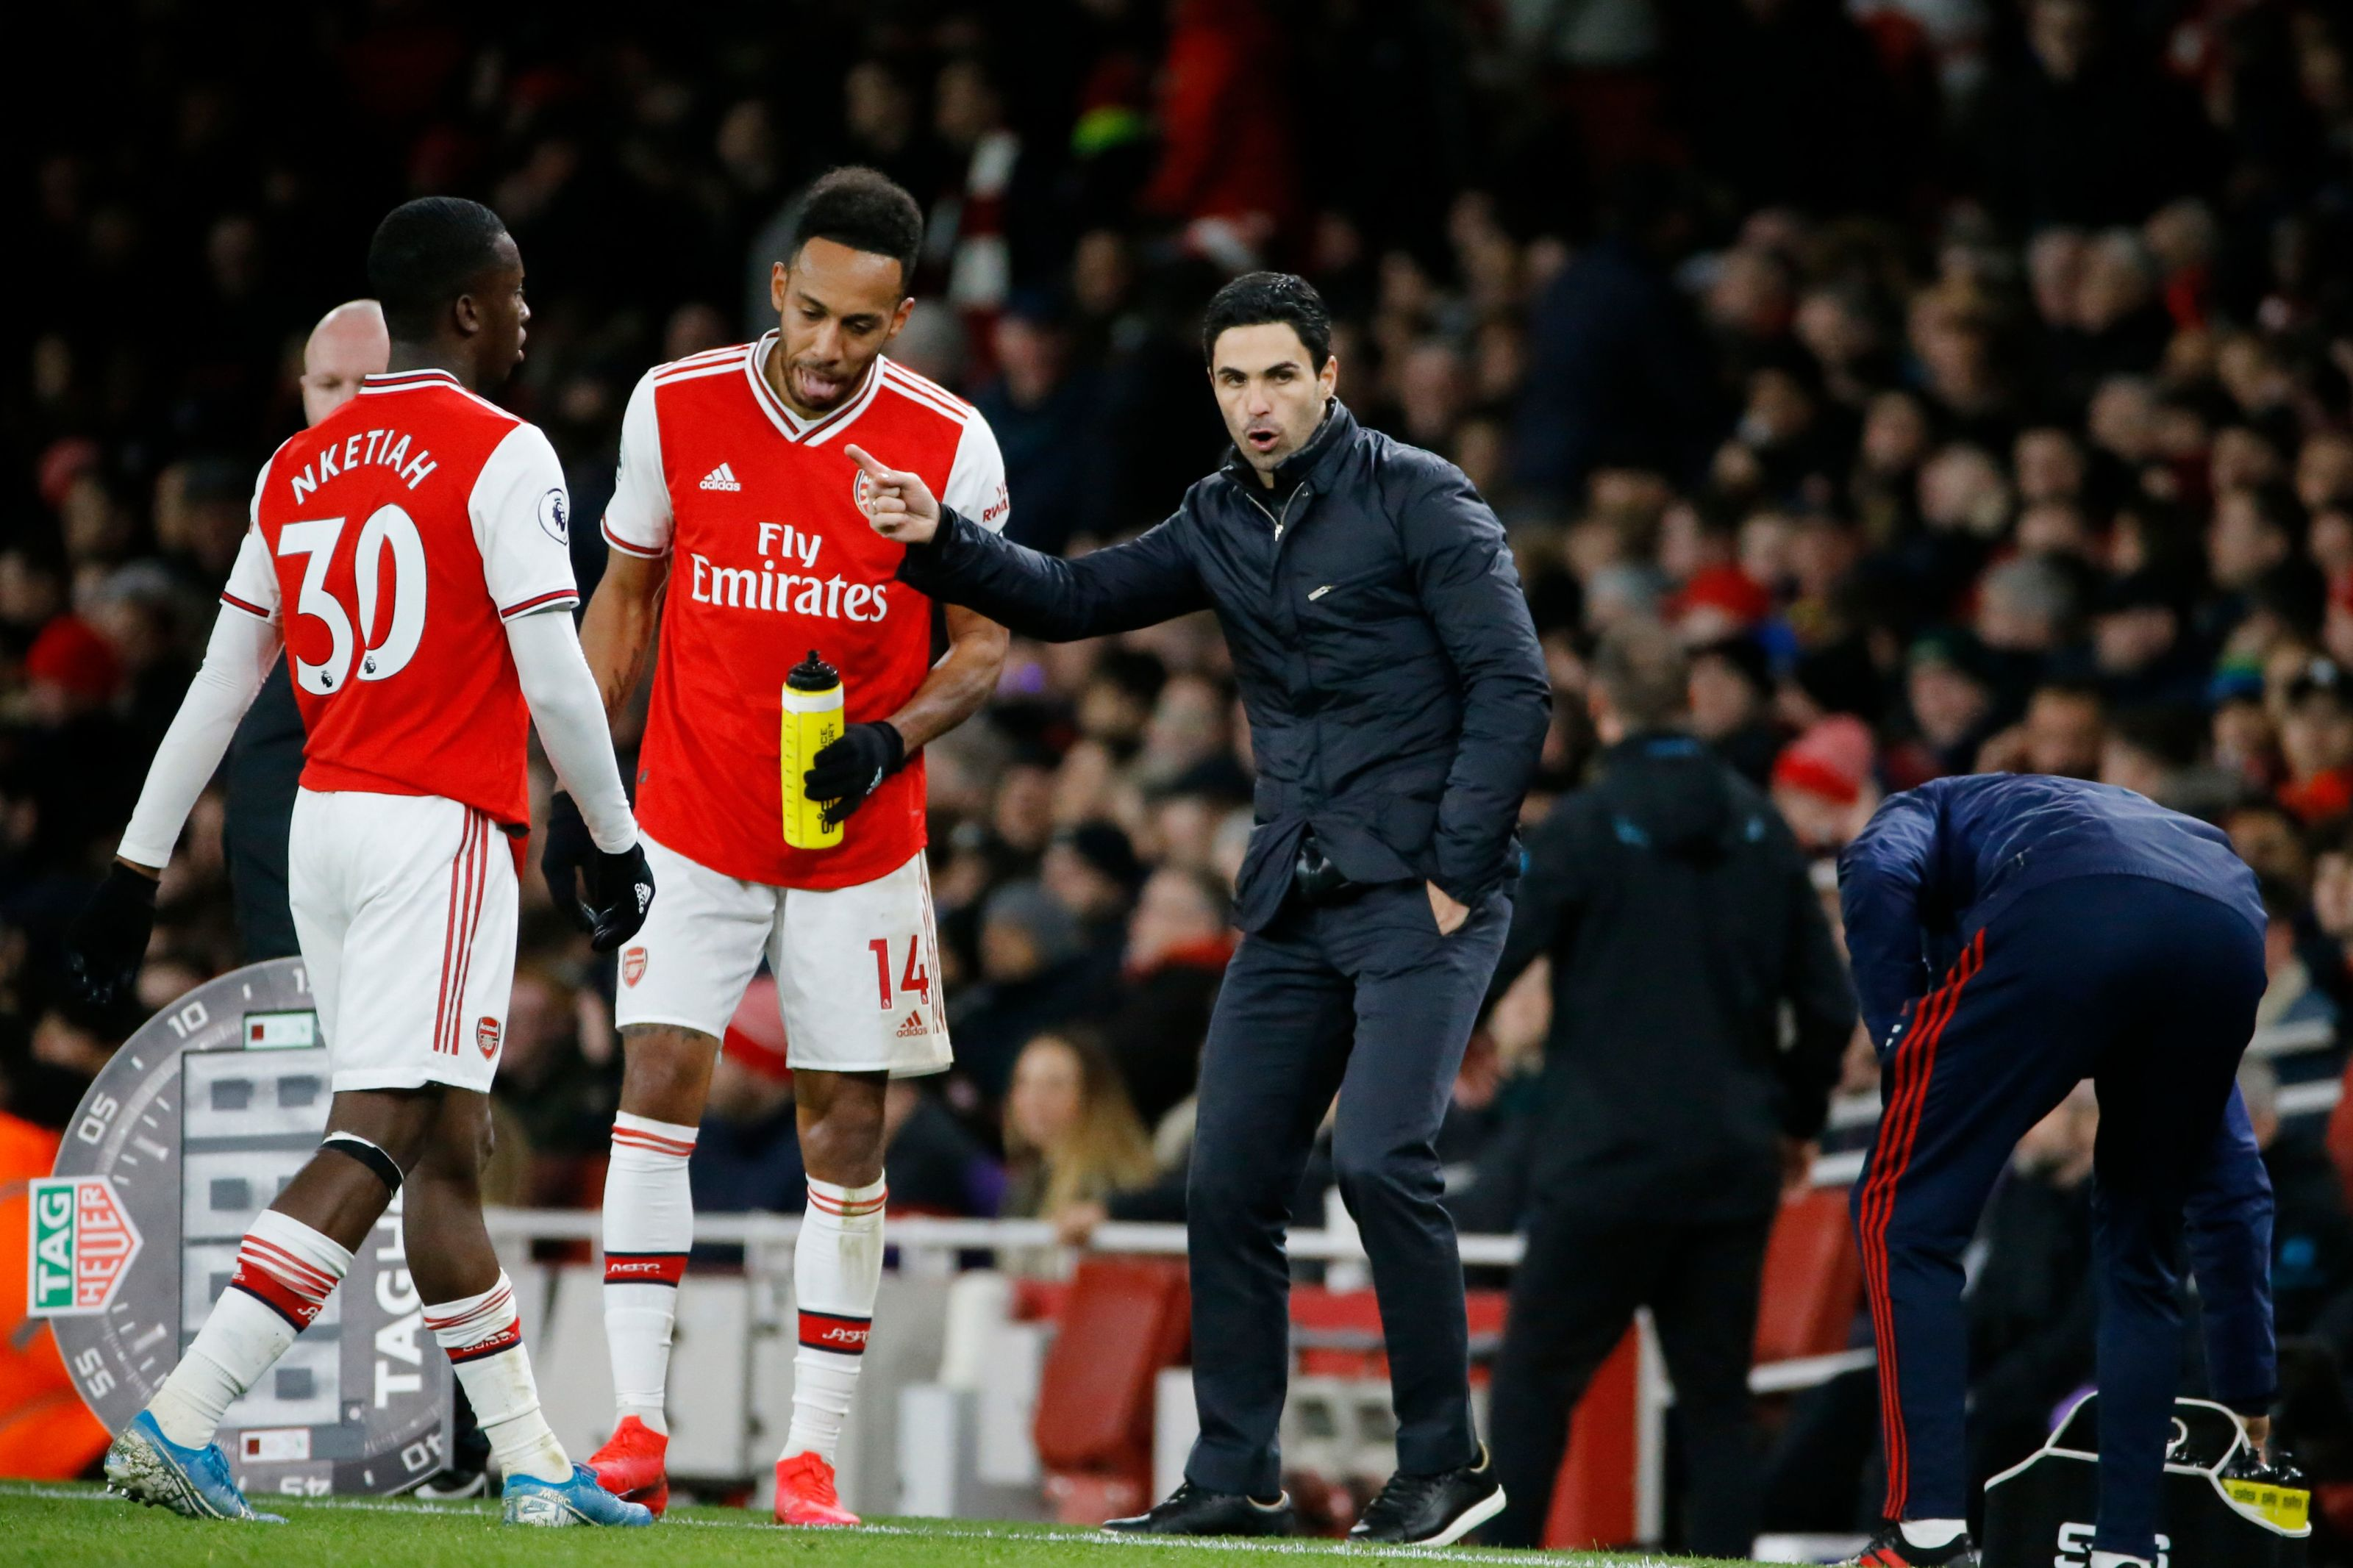 Arsenal: 3 different, deadly forms this attack could take